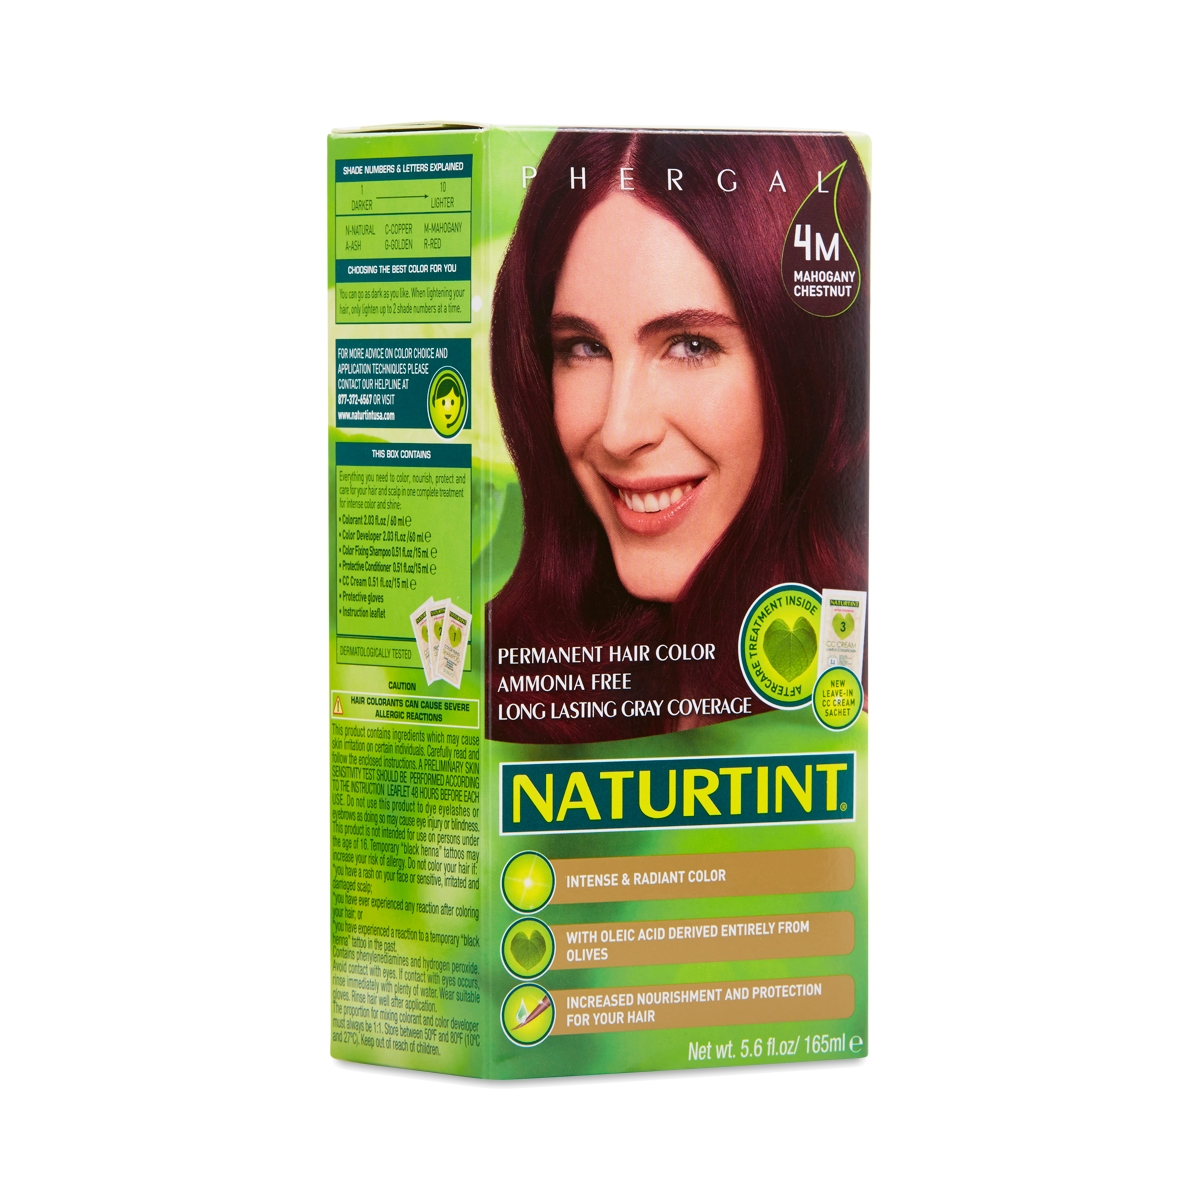 Mahogany Chestnut 4m Permanent Hair Color Thrive Market